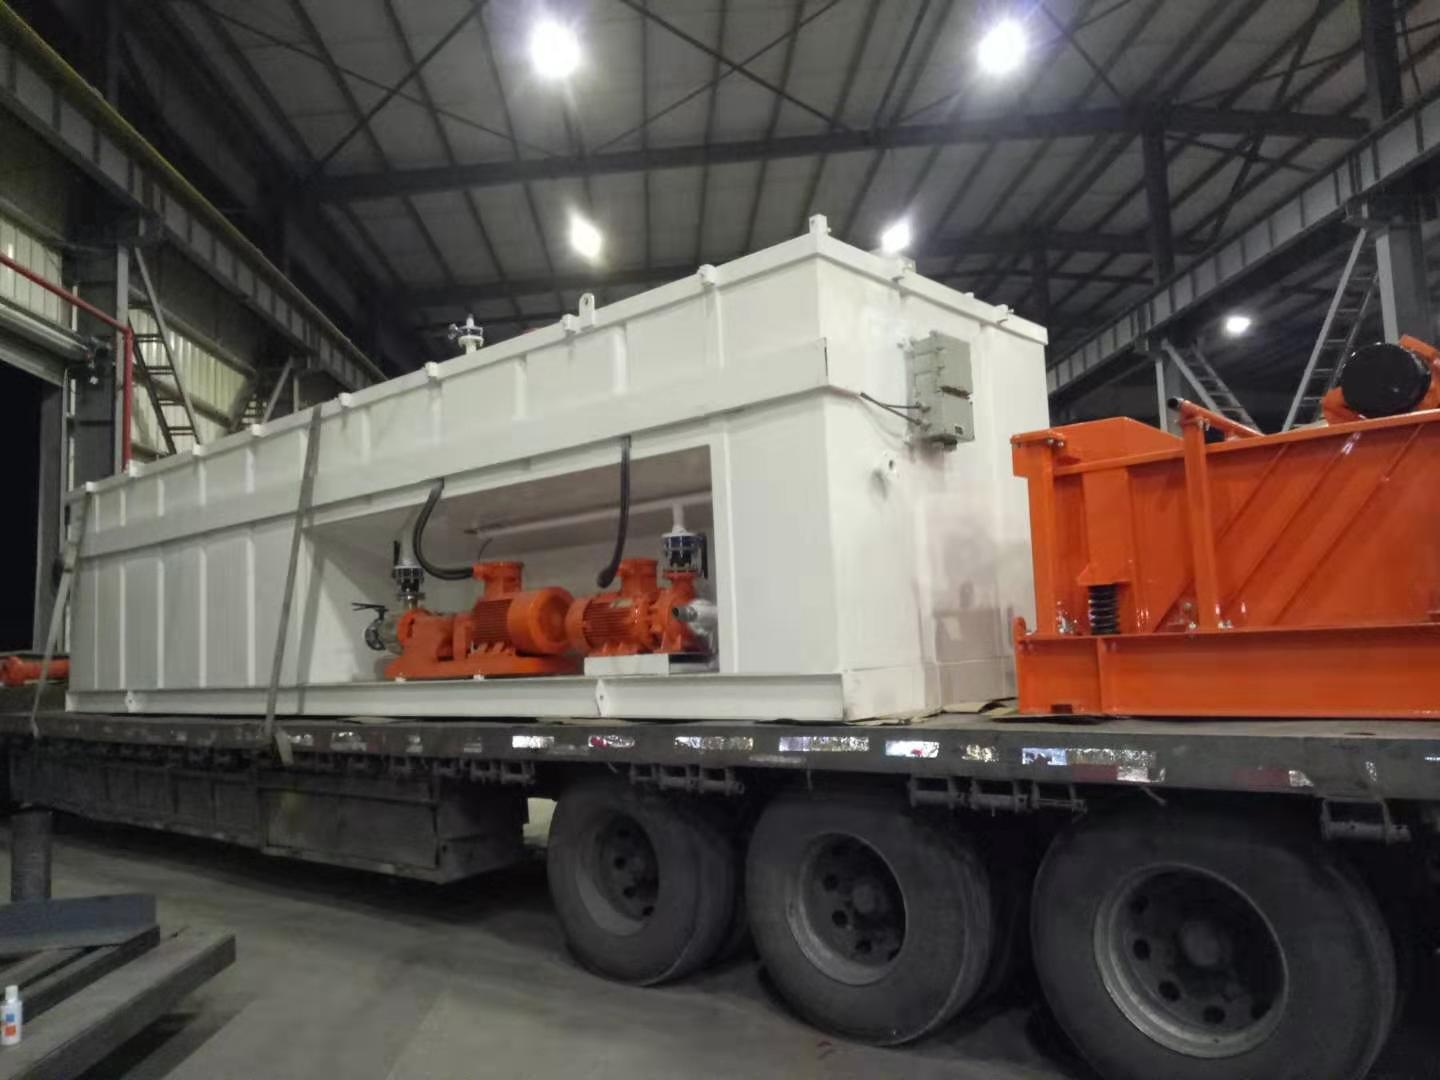 2 sets of ZJ20 rig solids control system delivered last days